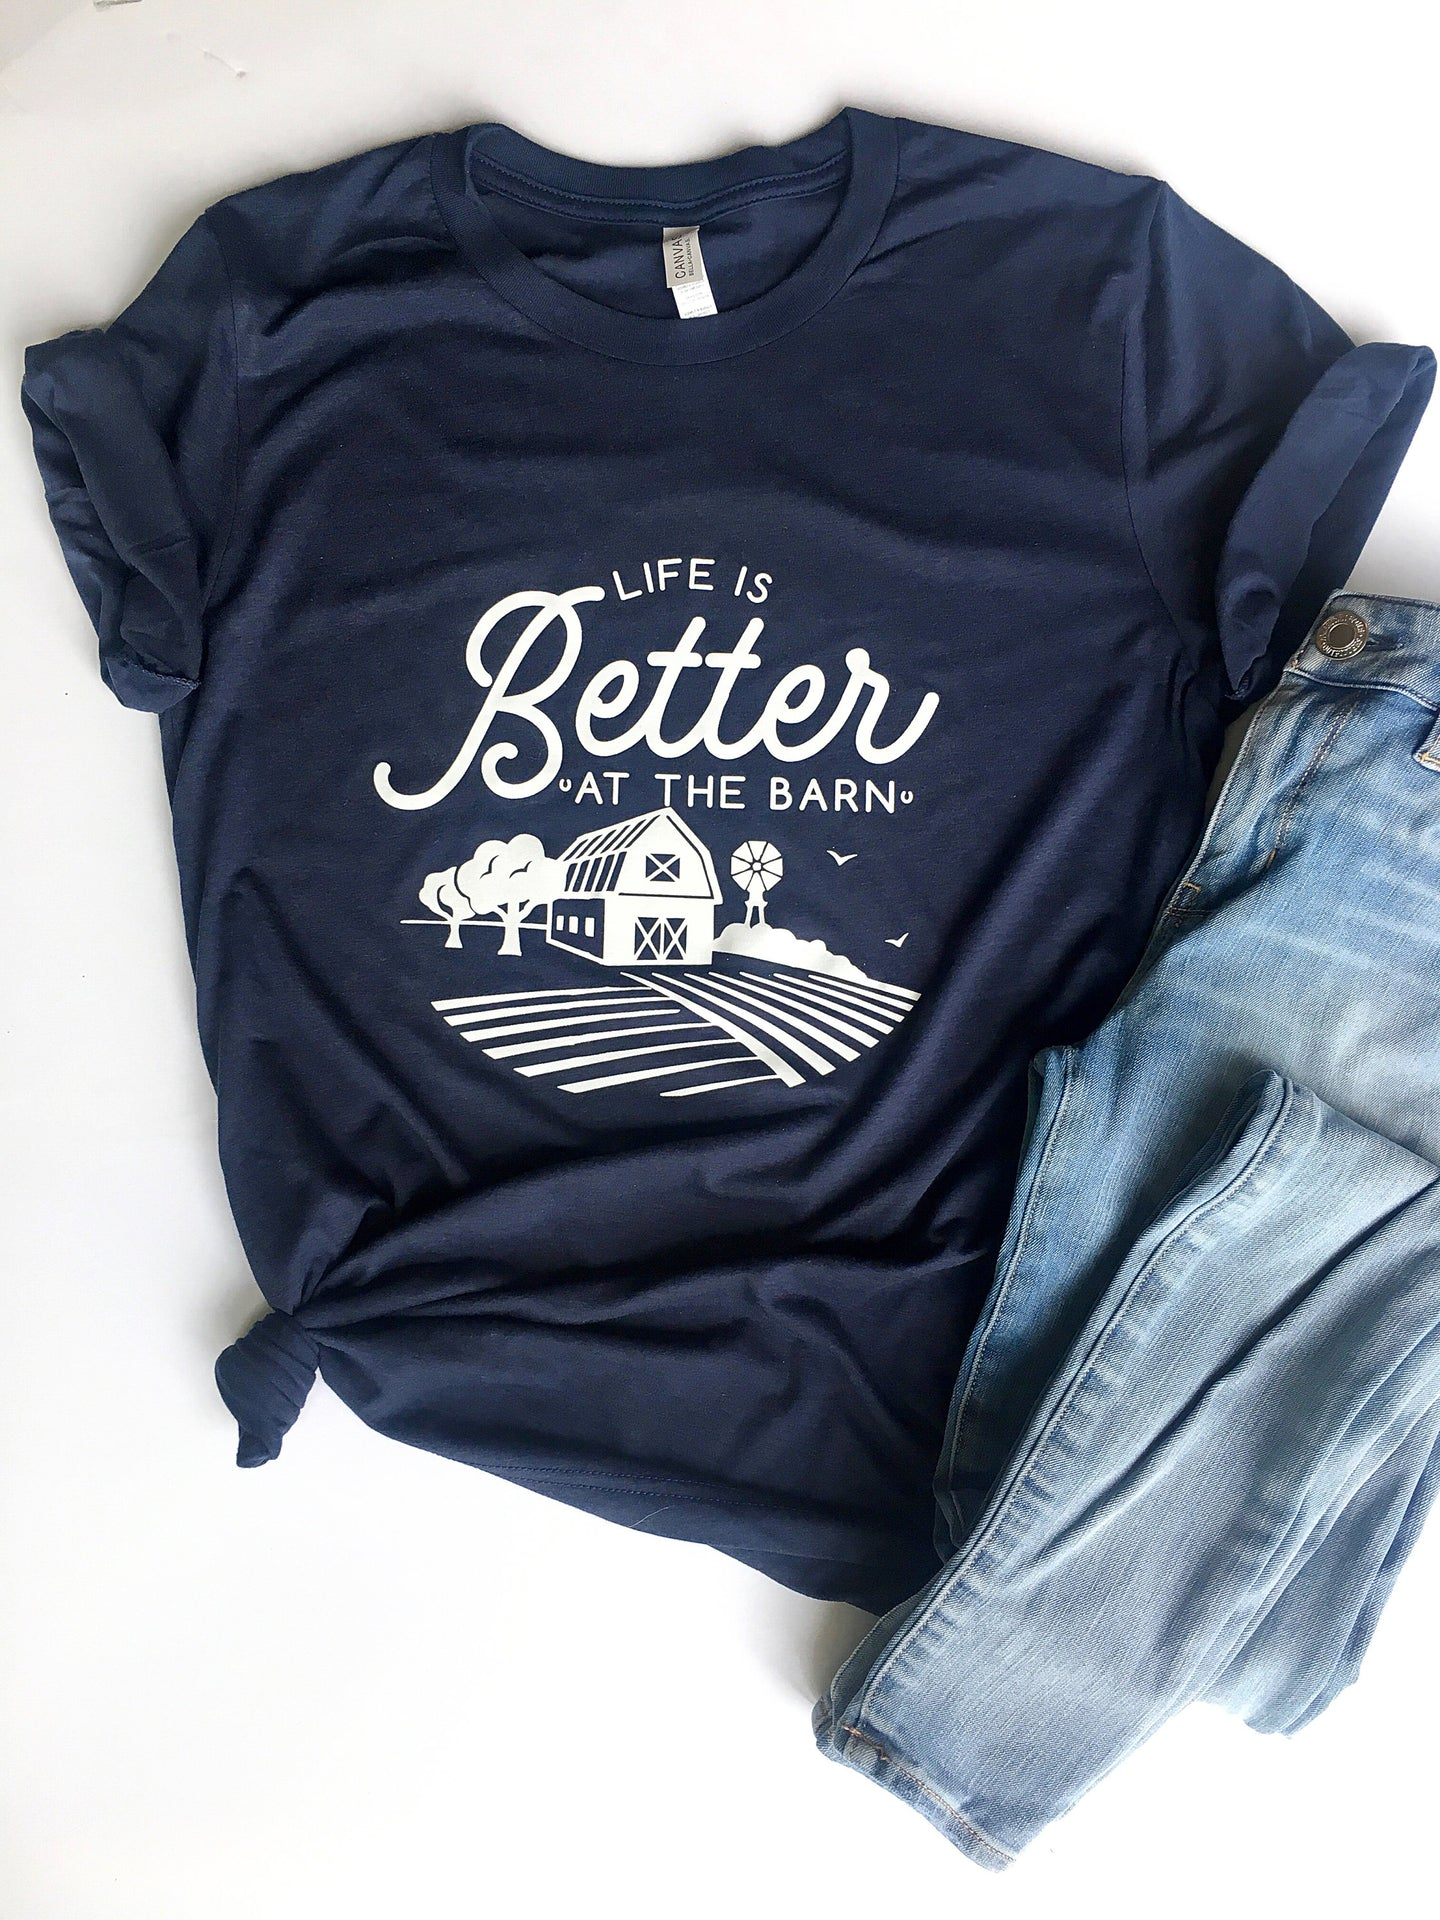 navy  blue short sleeve graphic tshirt that reads life is better at the barn with a barn scene.